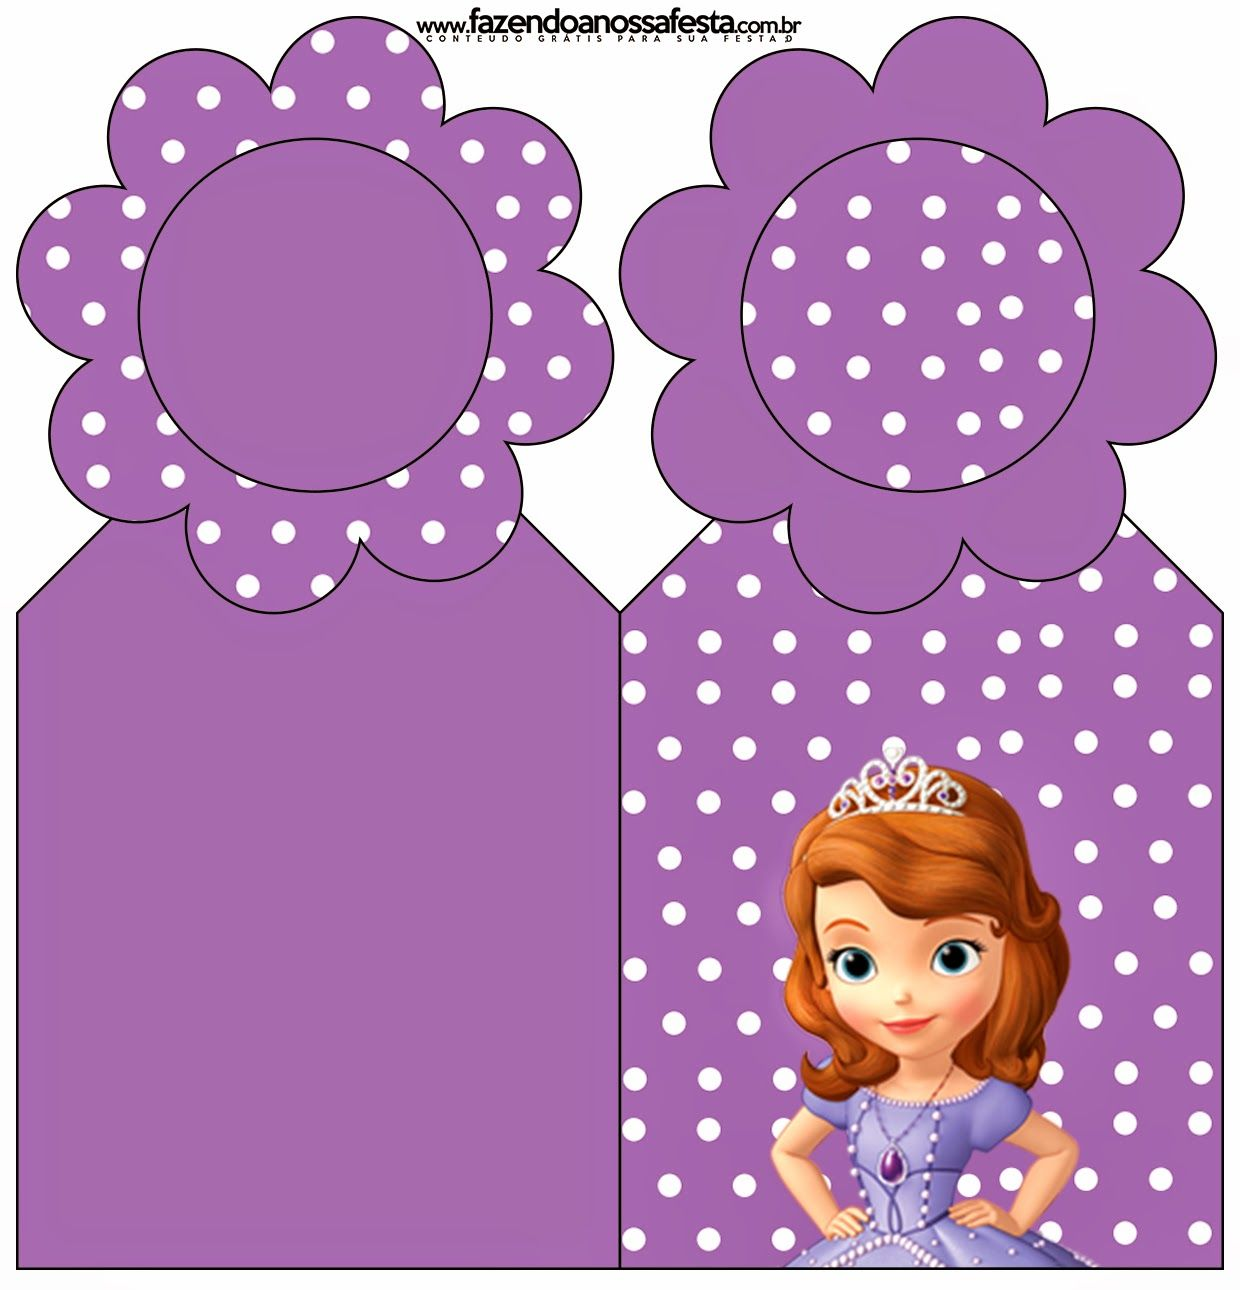 Sofia the First: Free Party Printables and Images. | Fiesta princesa ...